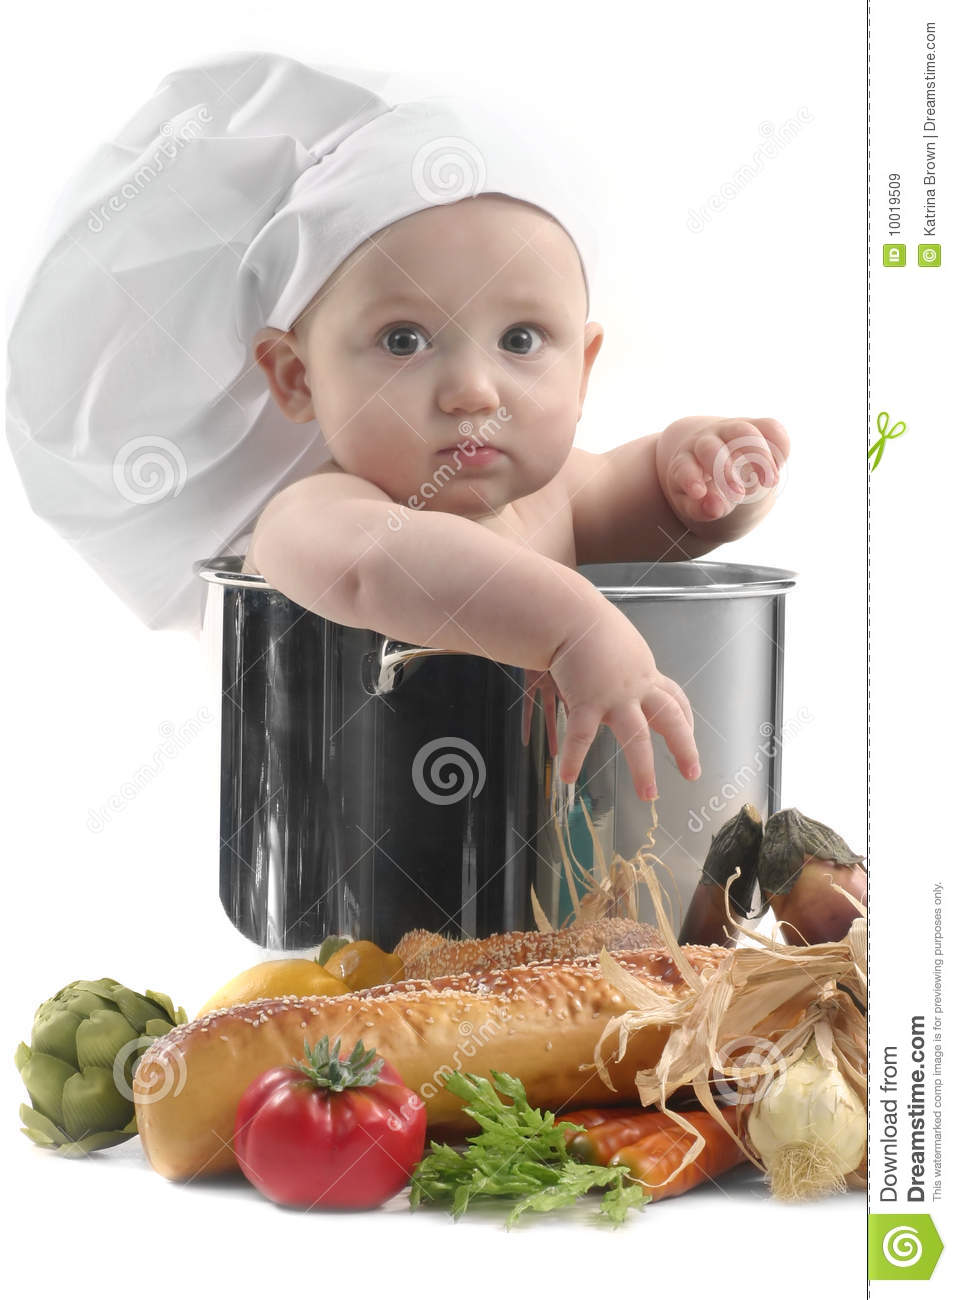 Cute chubby baby chef in a cooking pot royalty free stock images image 10019509 - Stylish cooking ...